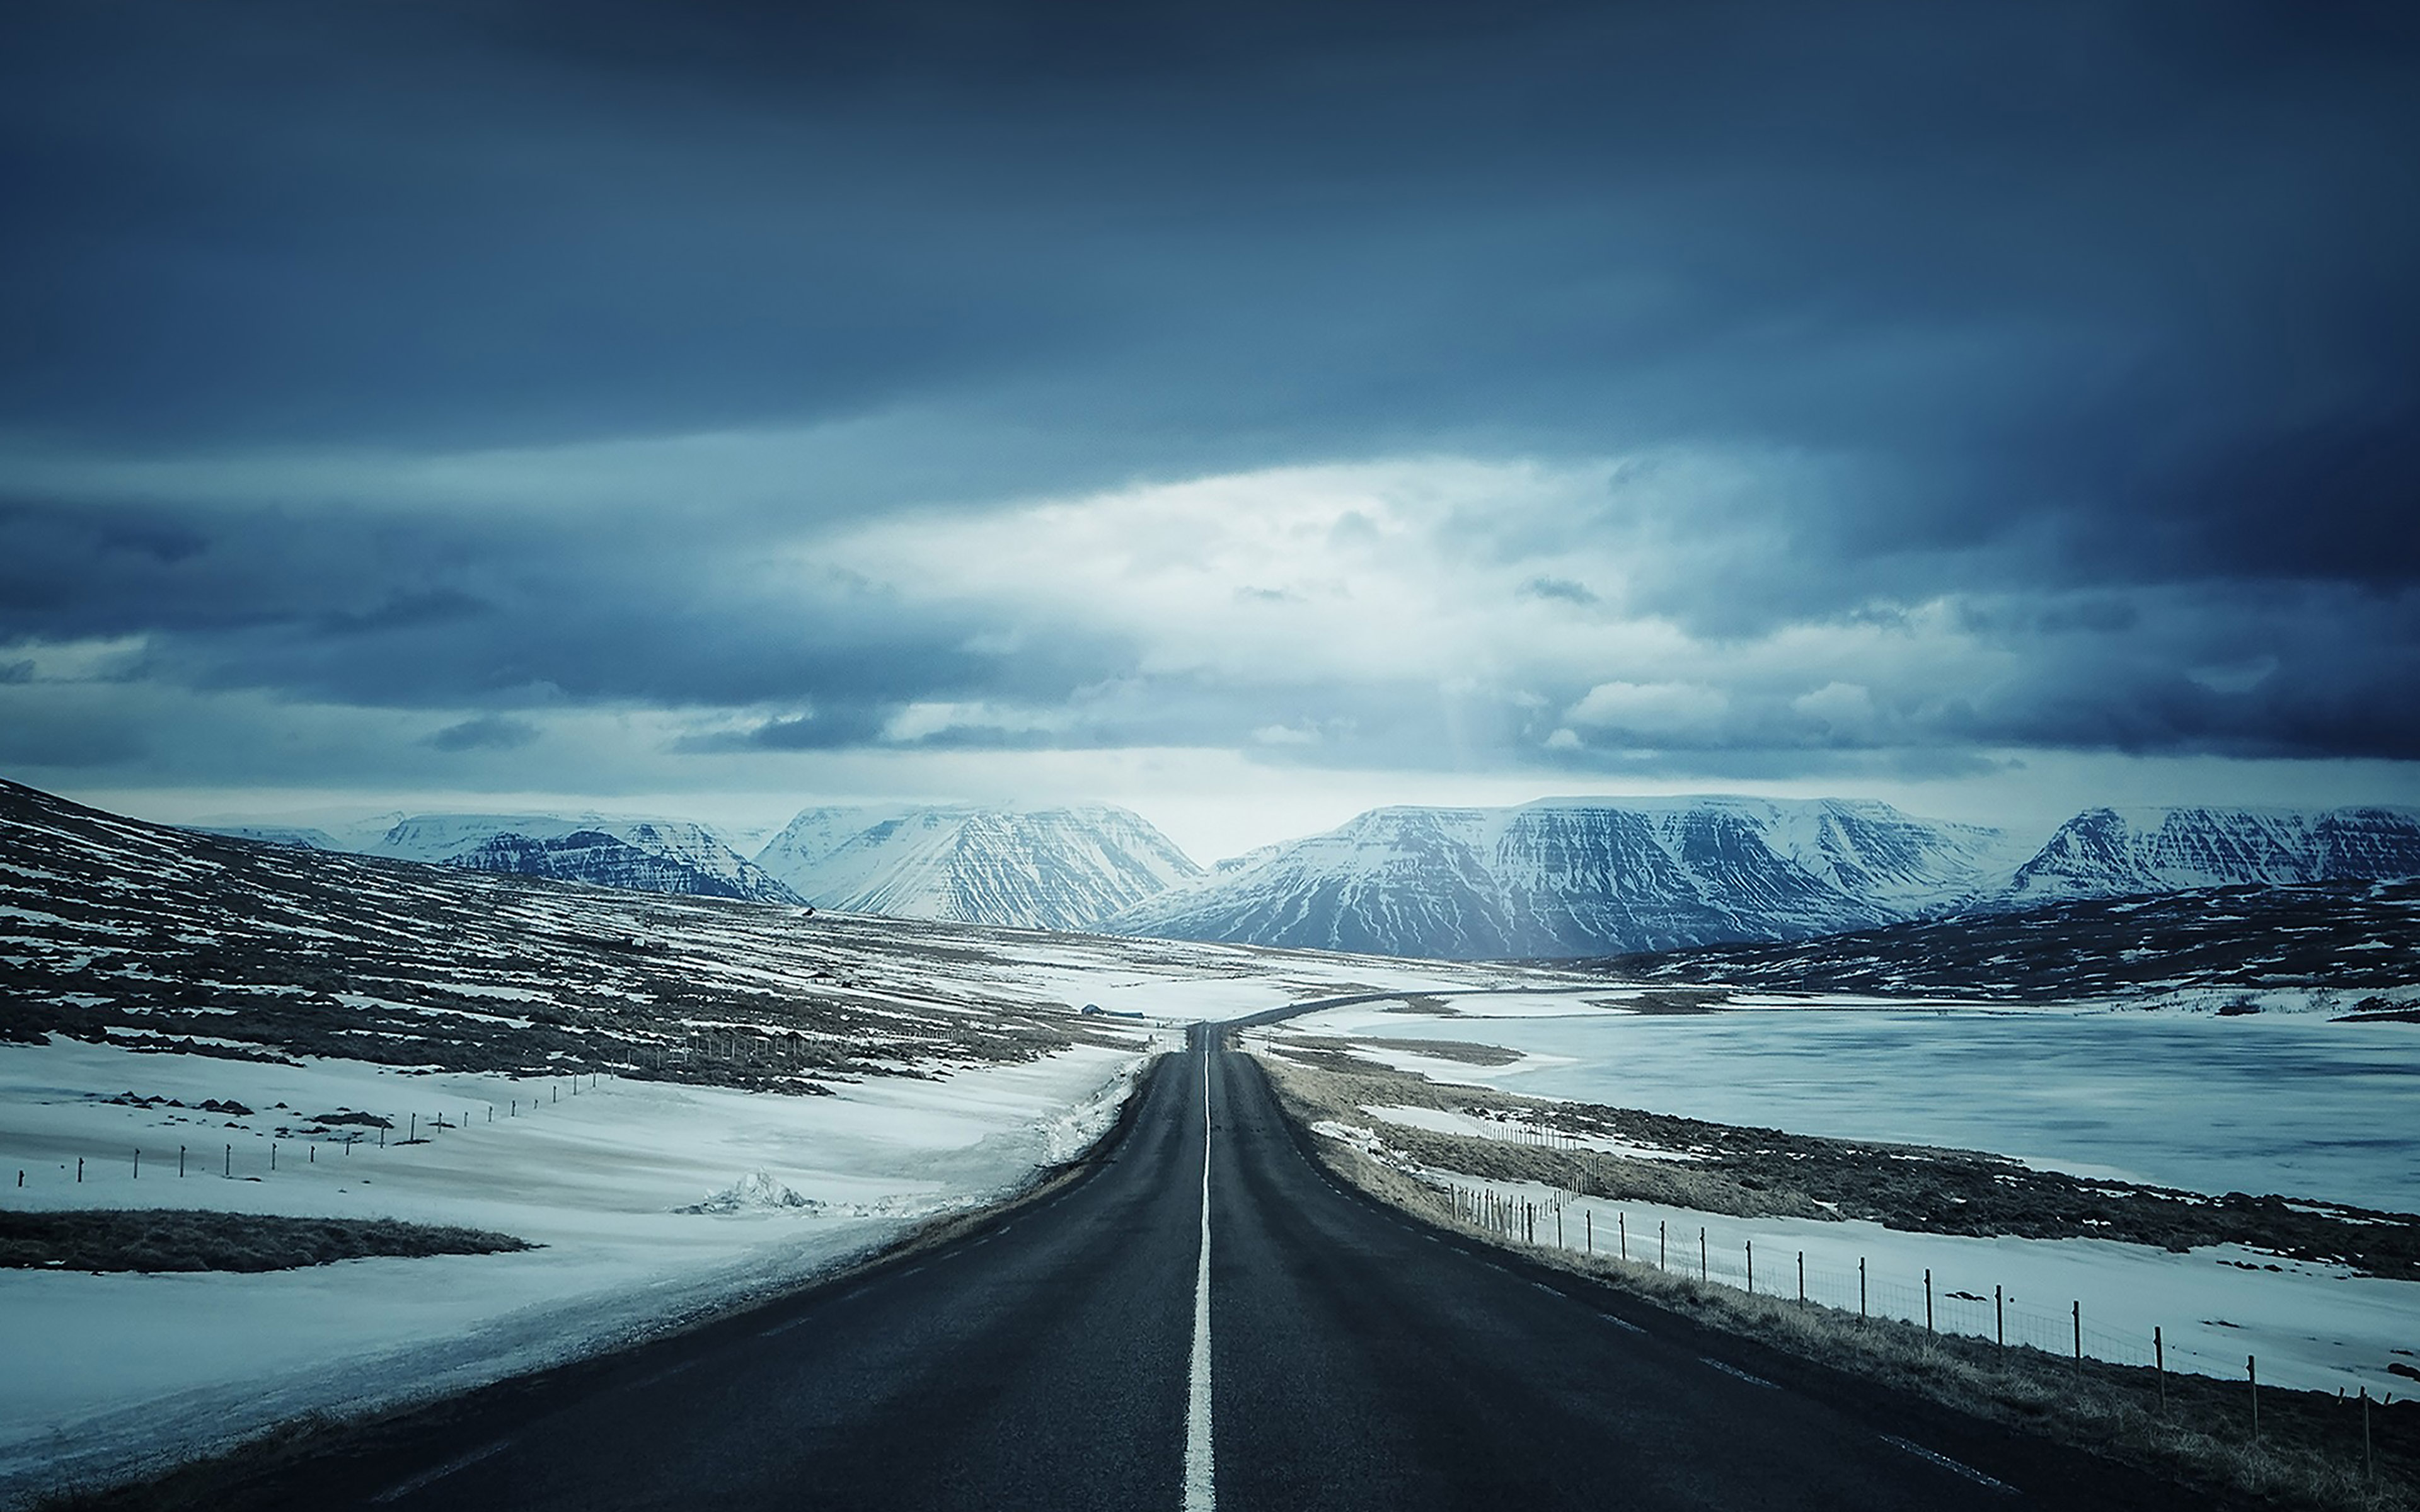 Top Free 4k Ipad Backgrounds: Ml47-road-to-snow-mountain-nature-winter